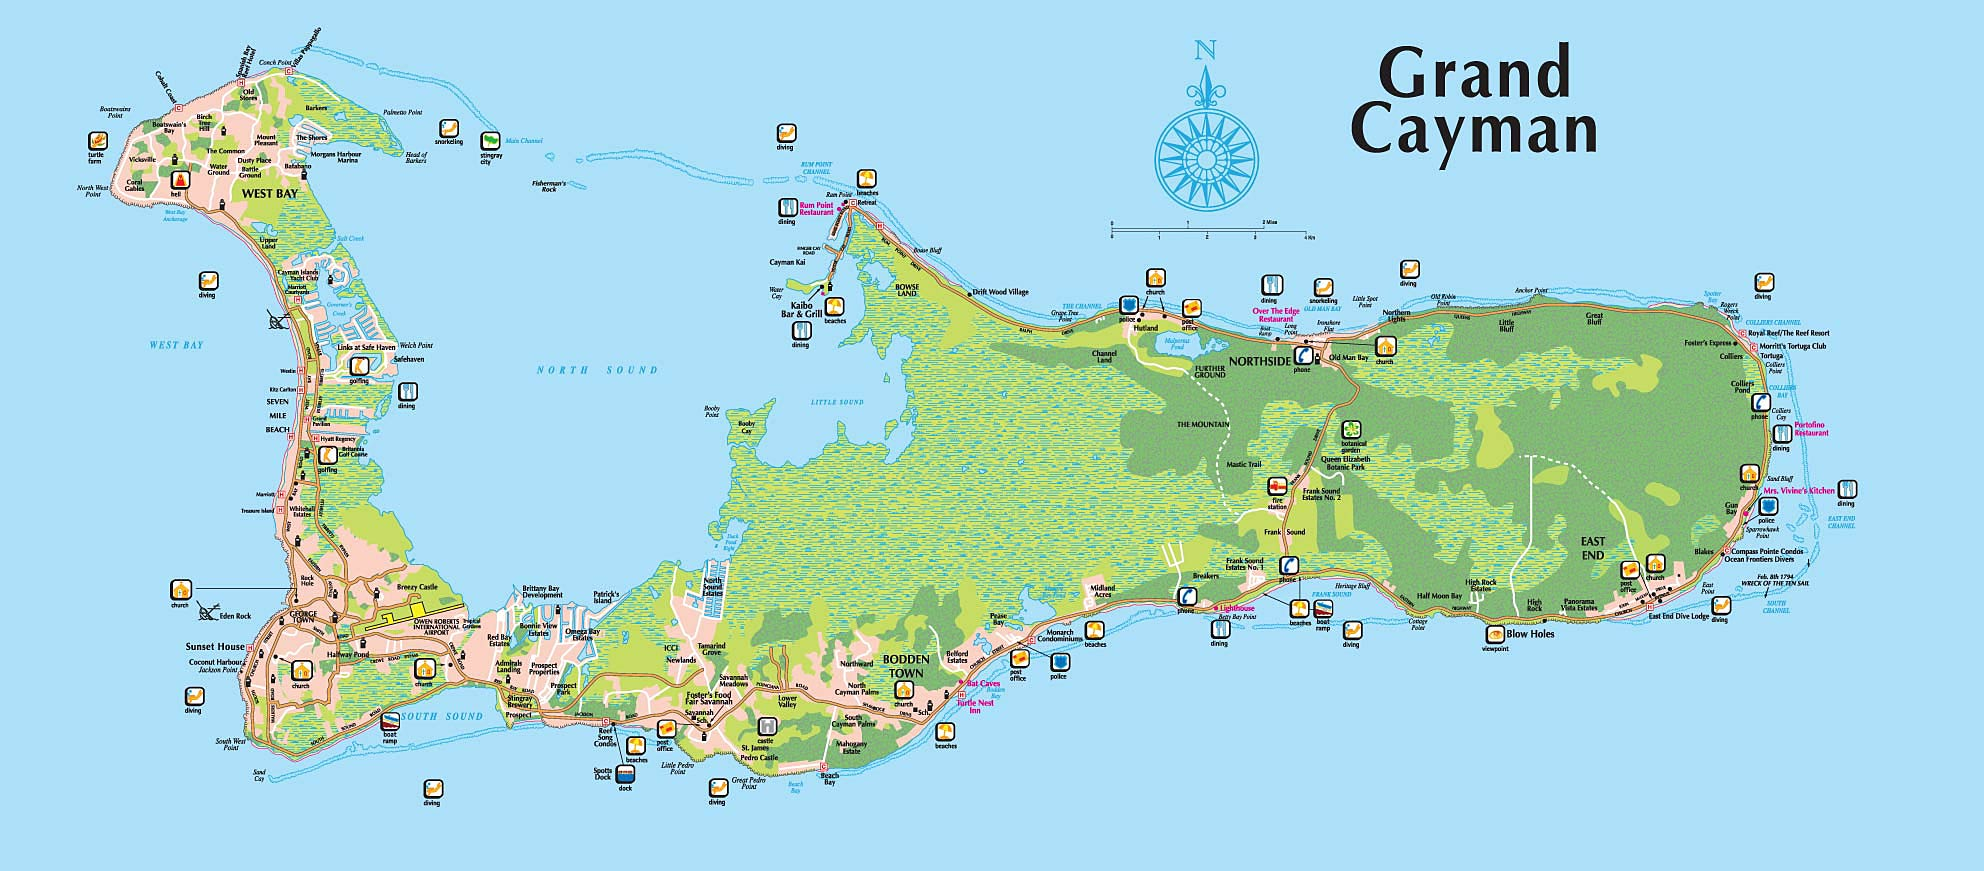 Cayman Islands Map Full Size Grand Cayman Island Map Cayman Islands Map